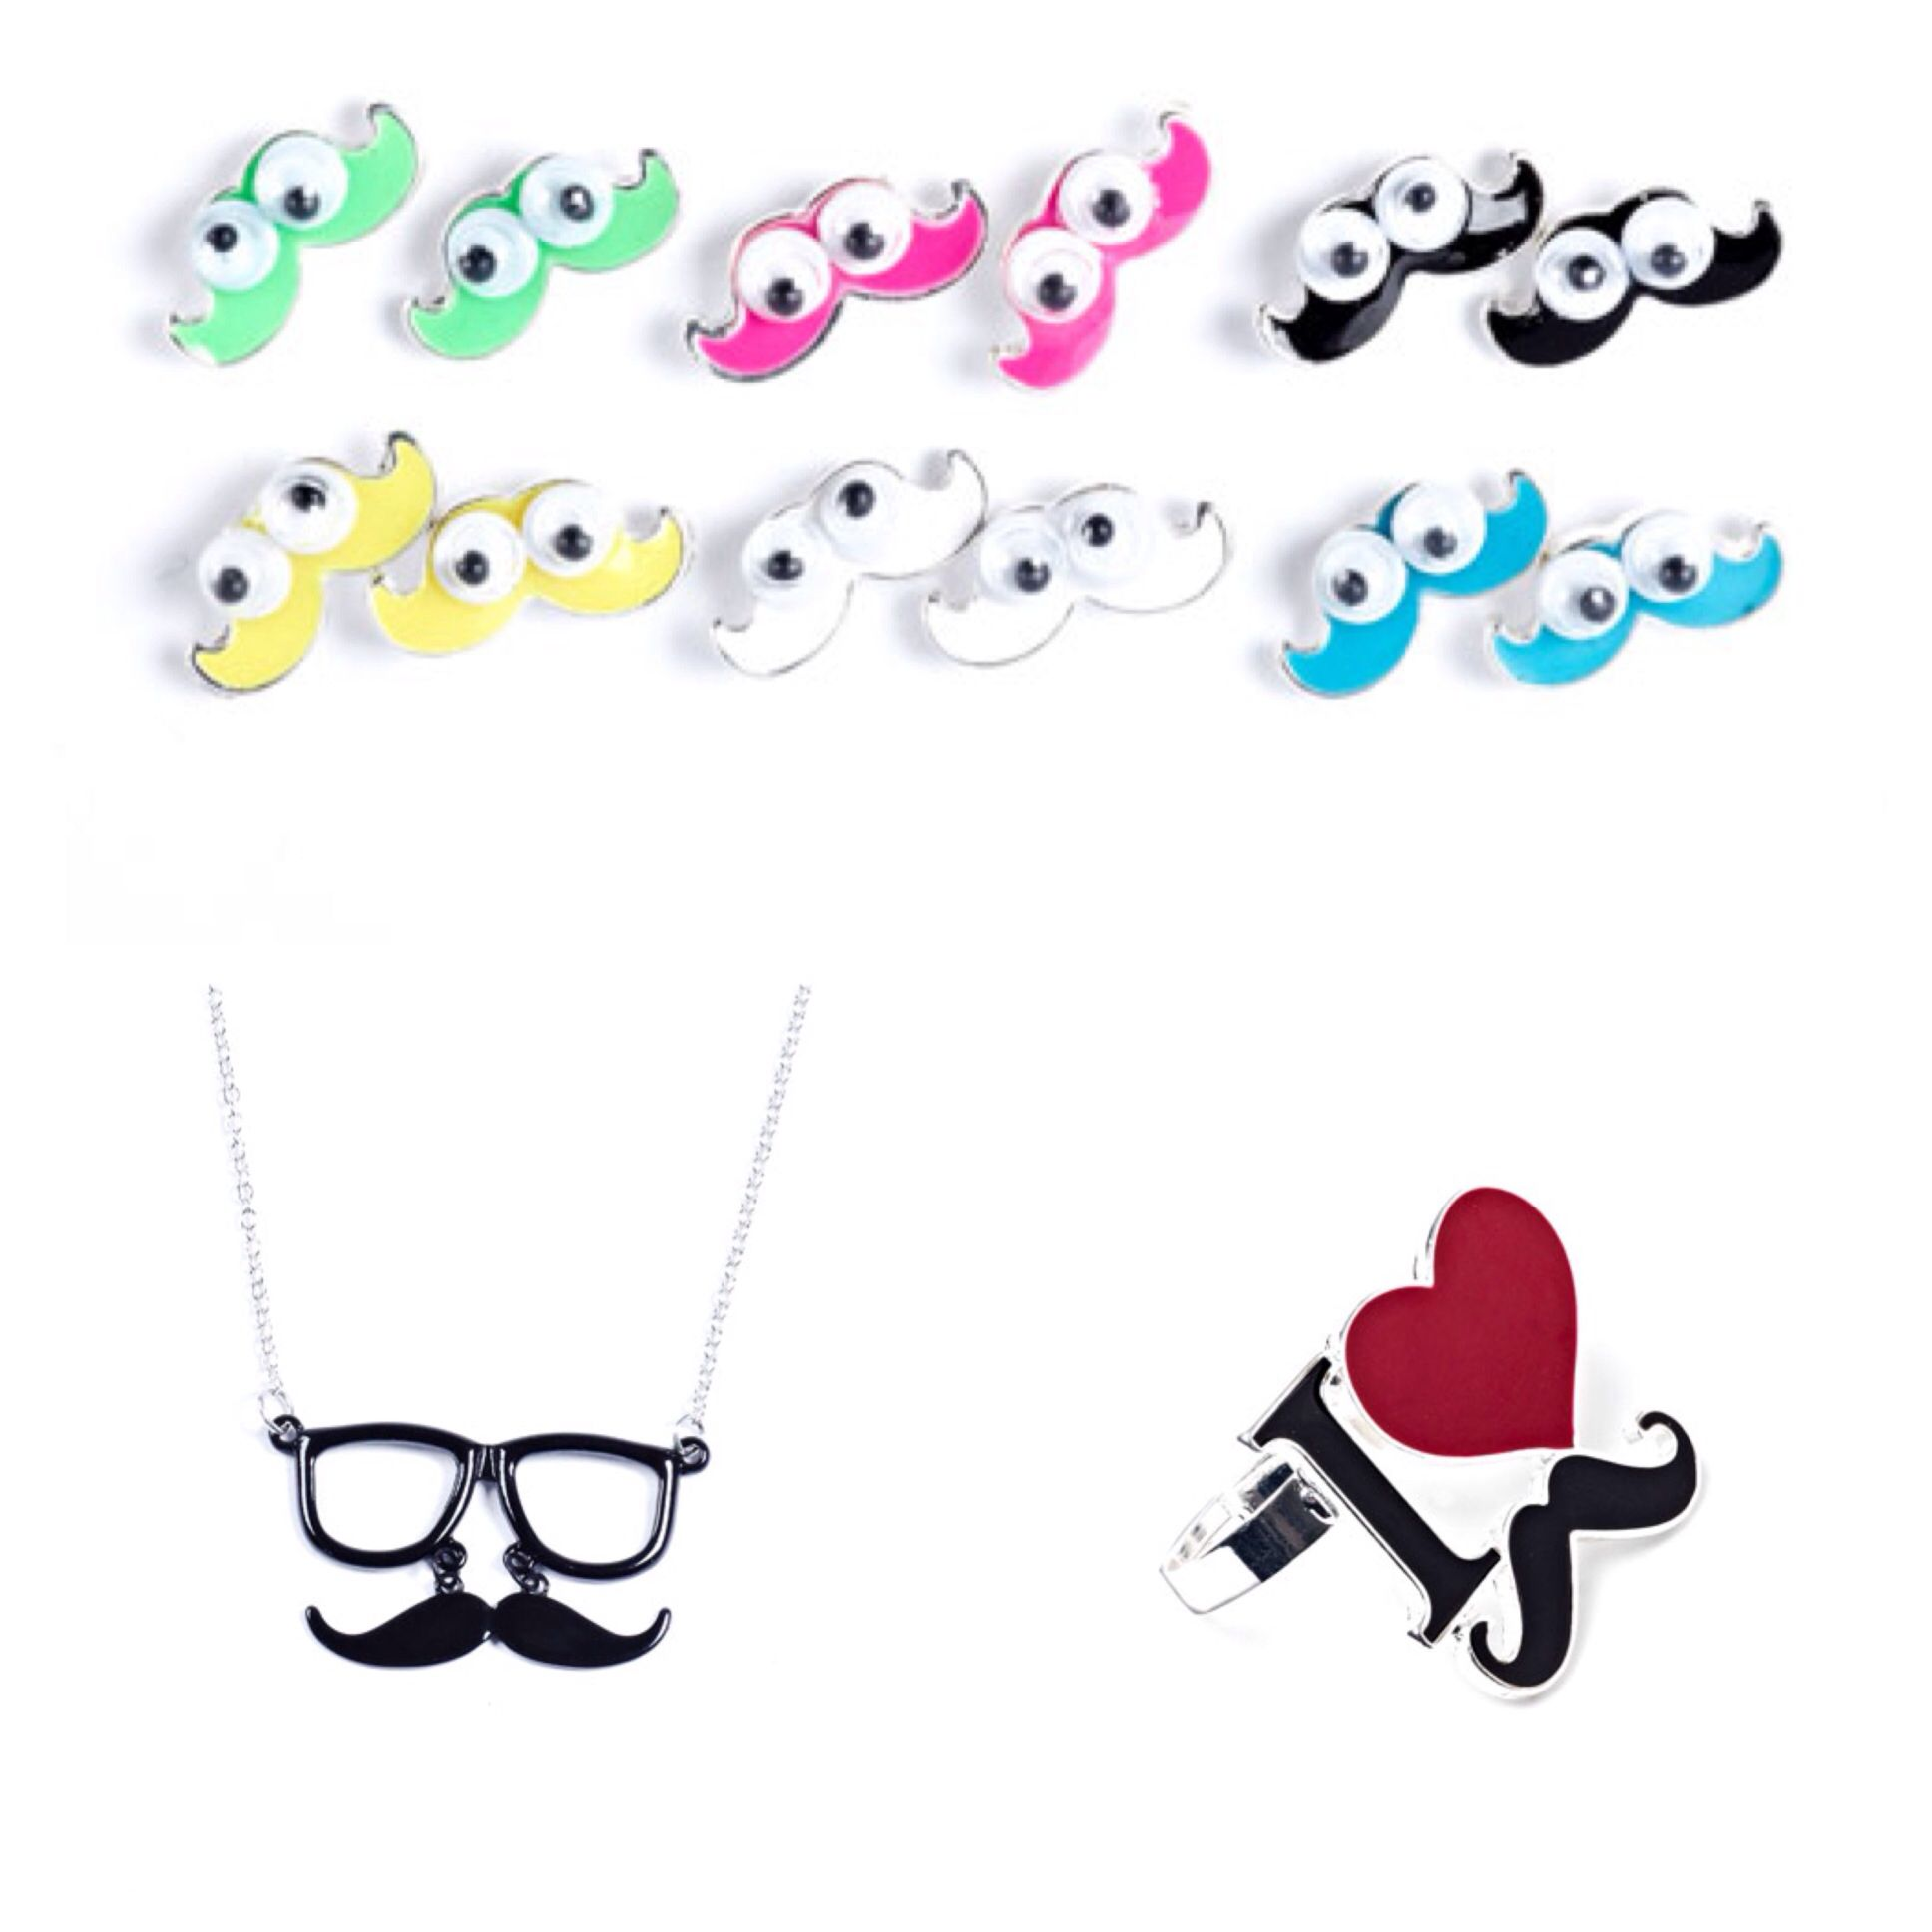 Moustache jewellery From clairs